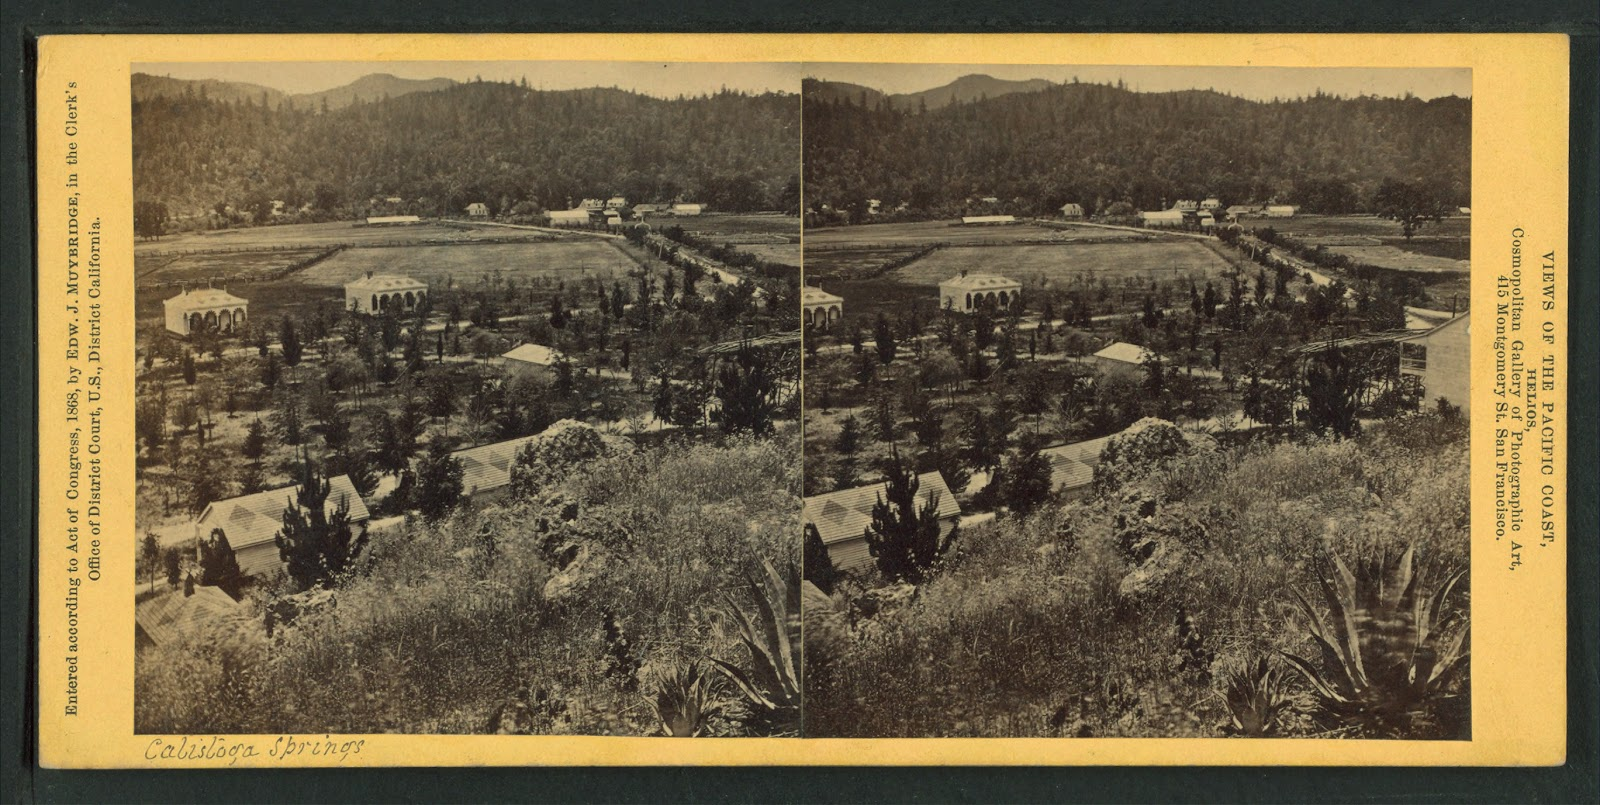 Historical 04 - Calistoga_Springs,_by_Muybridge,_Eadweard,_1830-1904